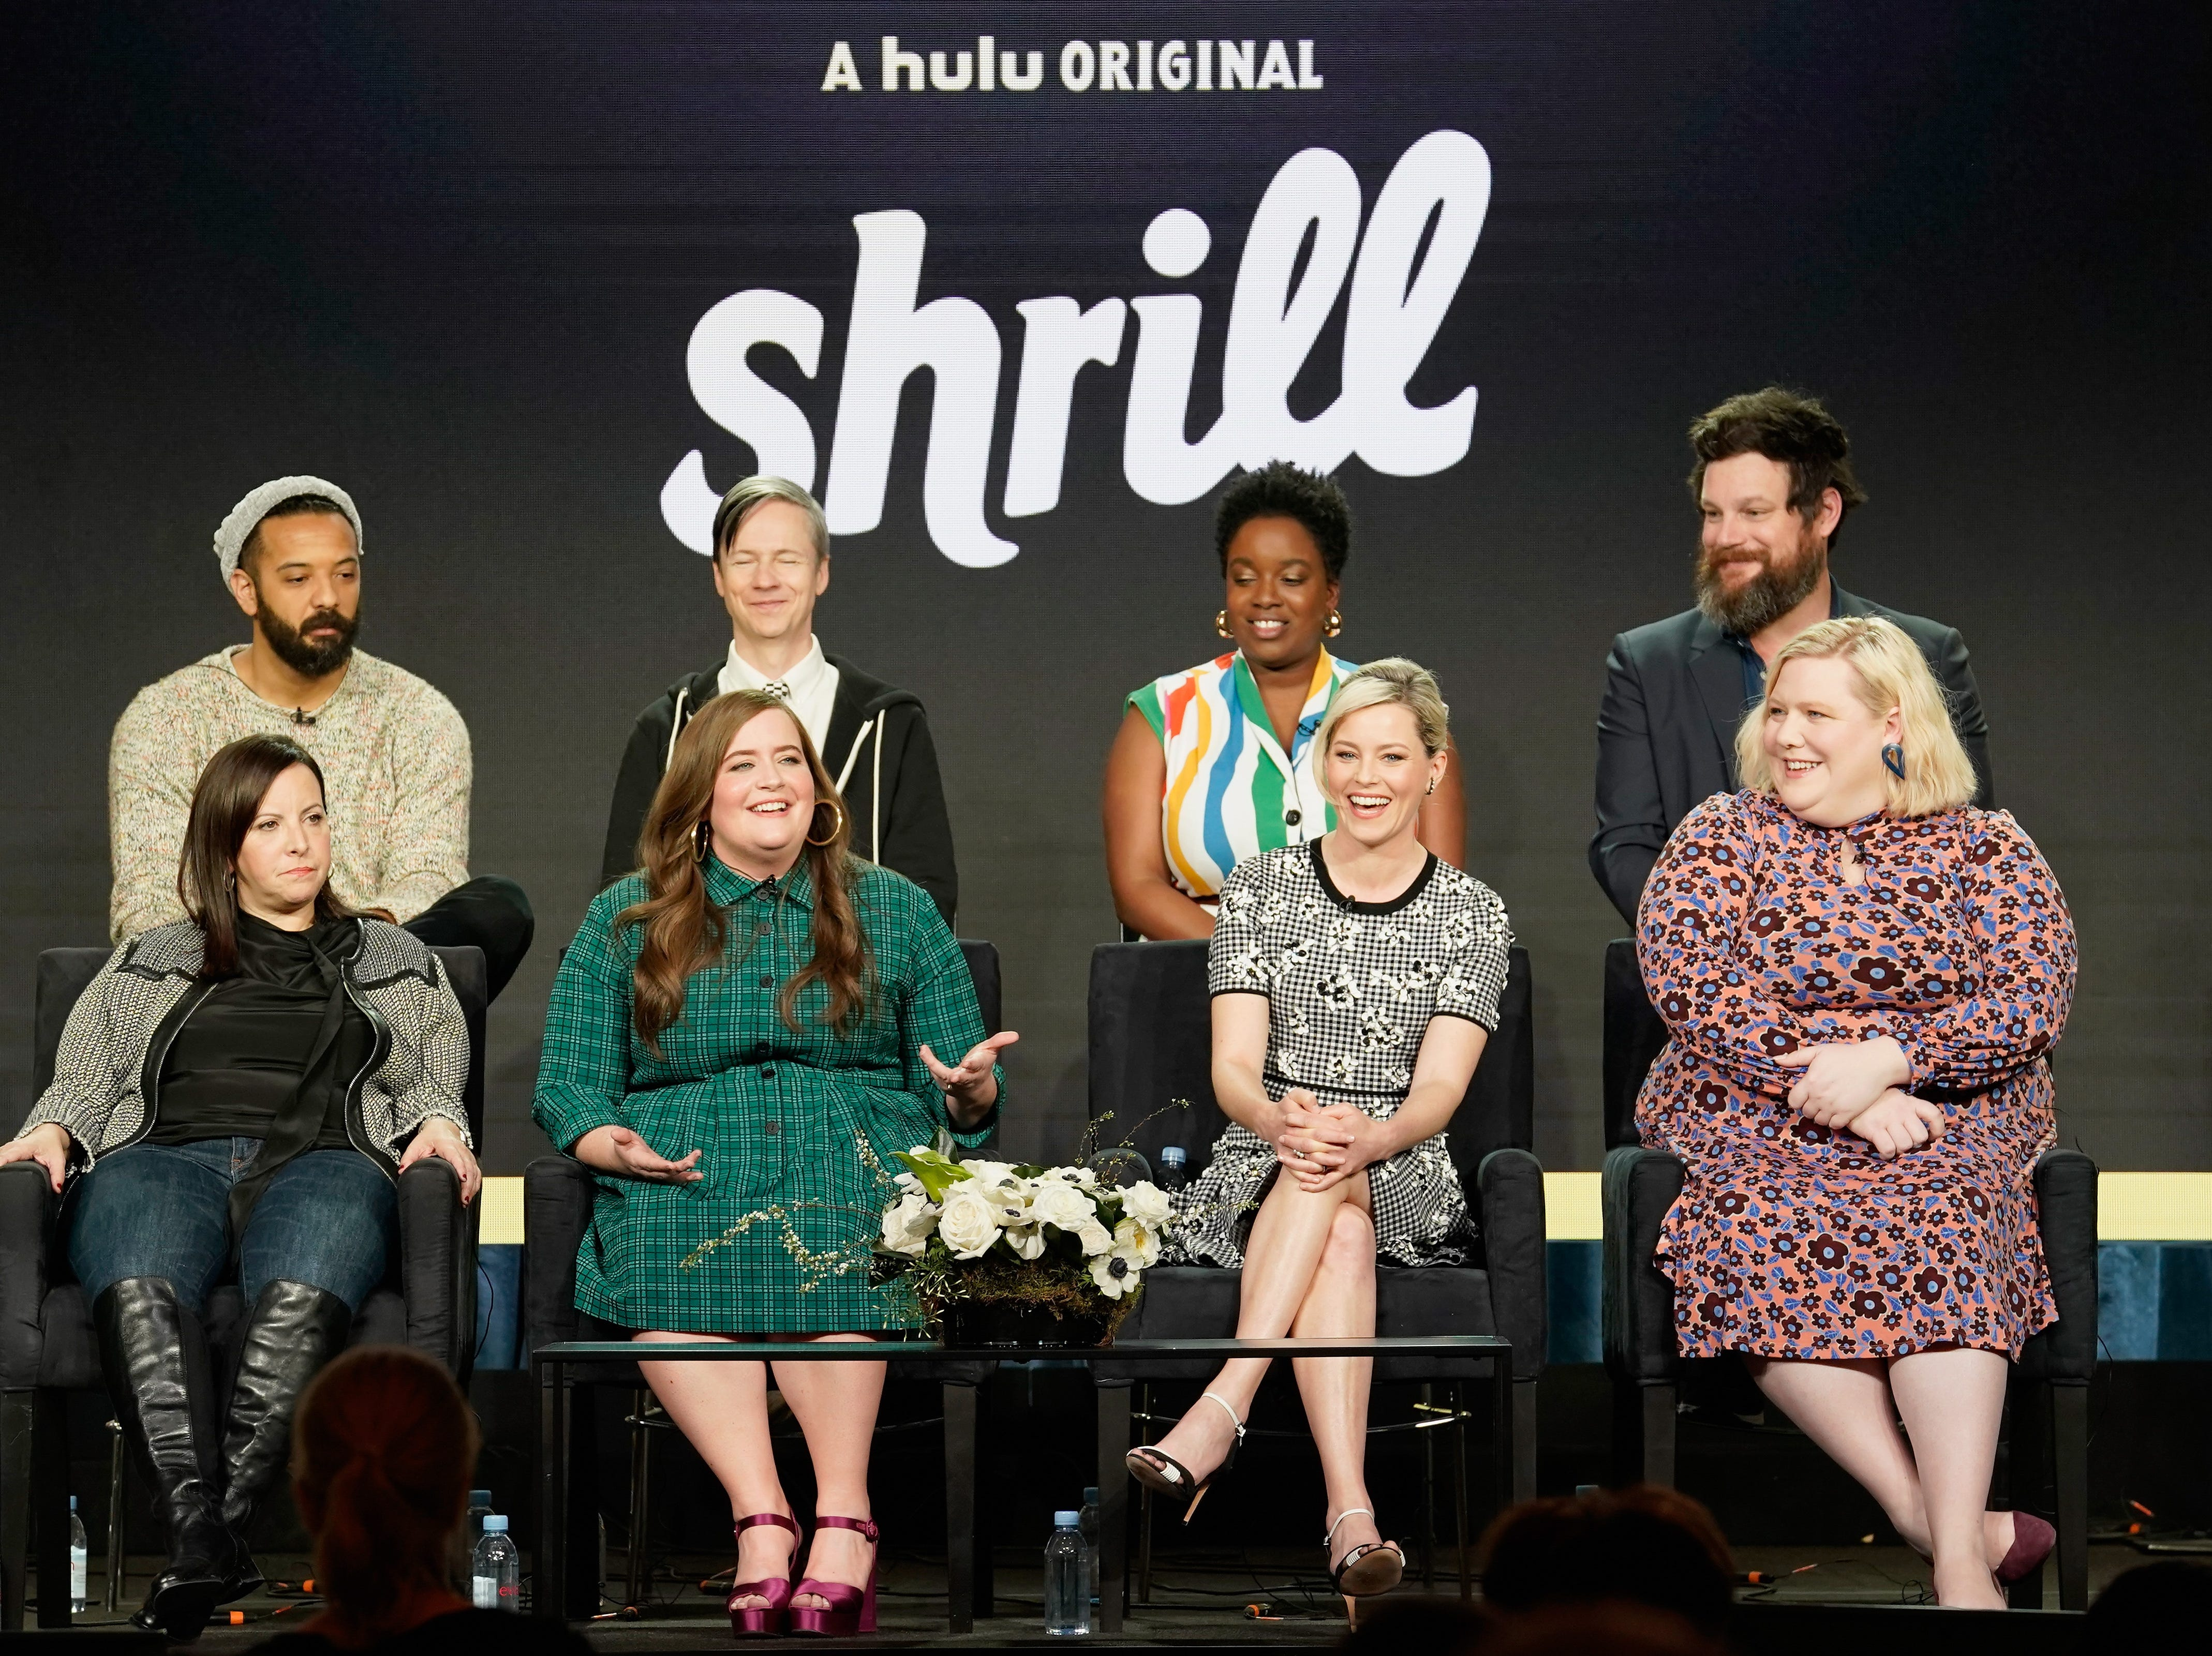 """The cast of Hulu's """"Shrill"""" -- Ian Owens, Ali Rushfield, John Cameron Mitchell, Aidy Bryant,  Lolly Adefope,  Elizabeth Banks, Lindy West and Luka Jones -- talk about their new show."""